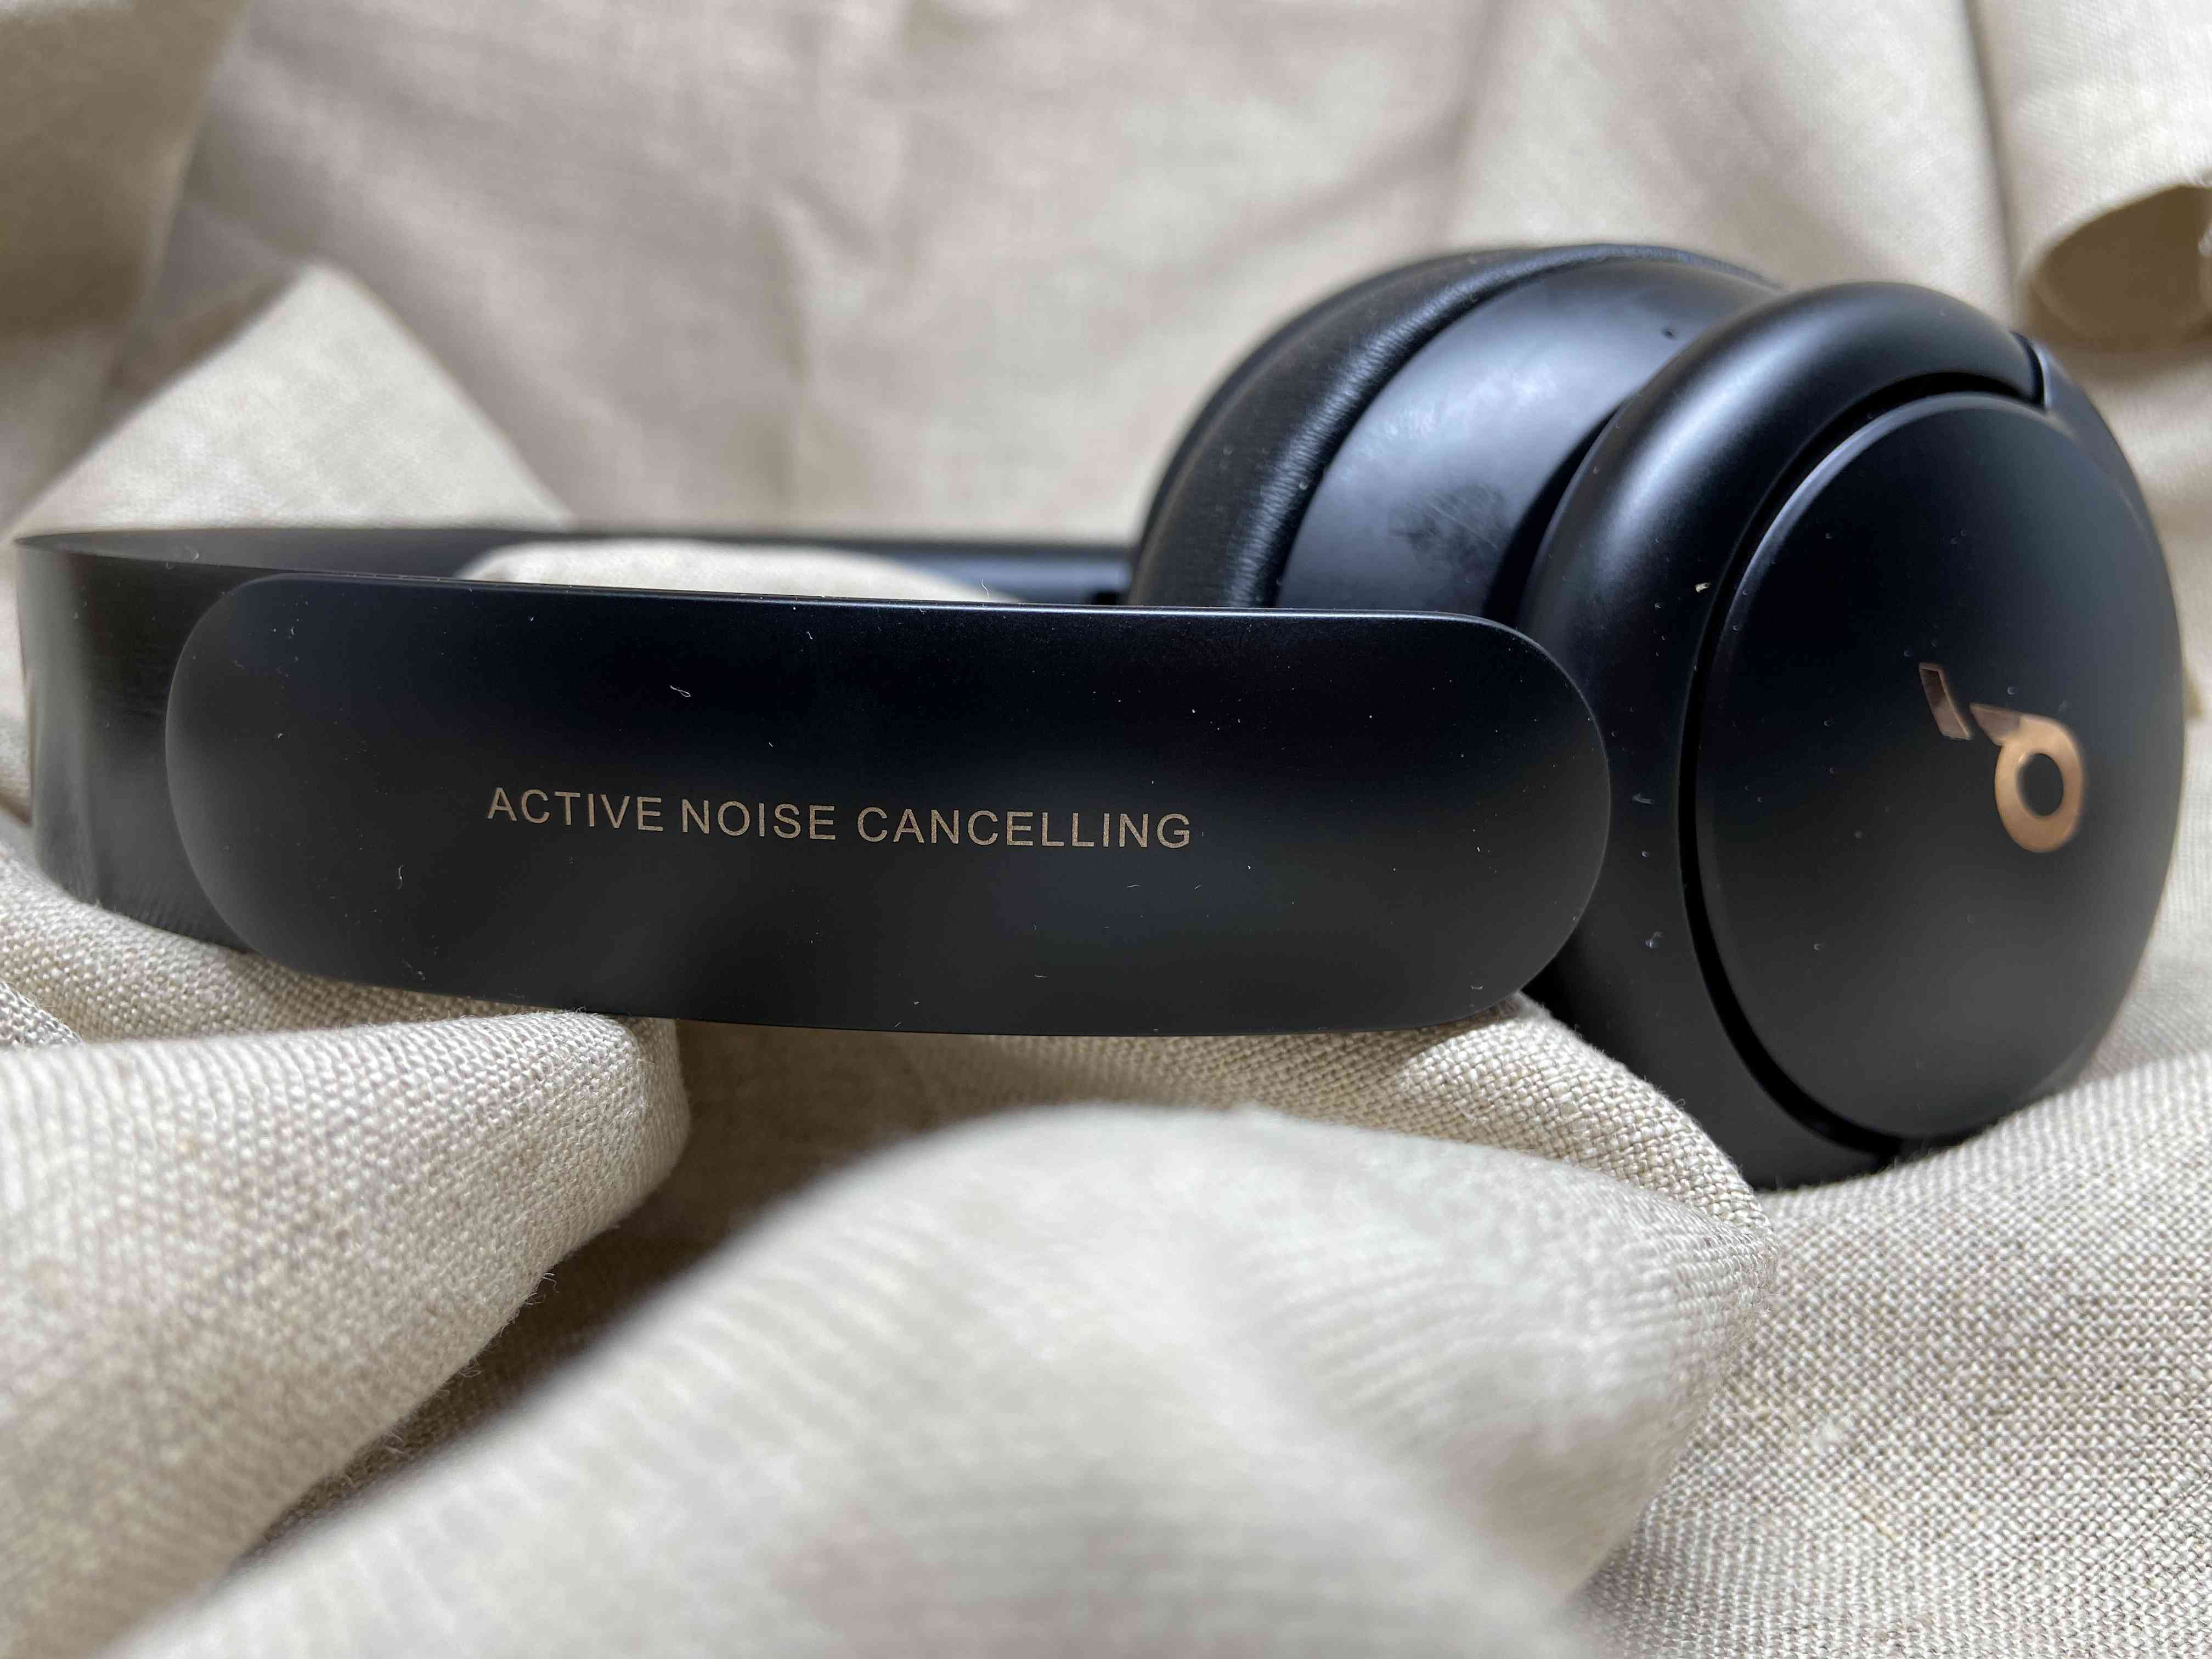 Soundcore Life Q30 headphones on their side, showing